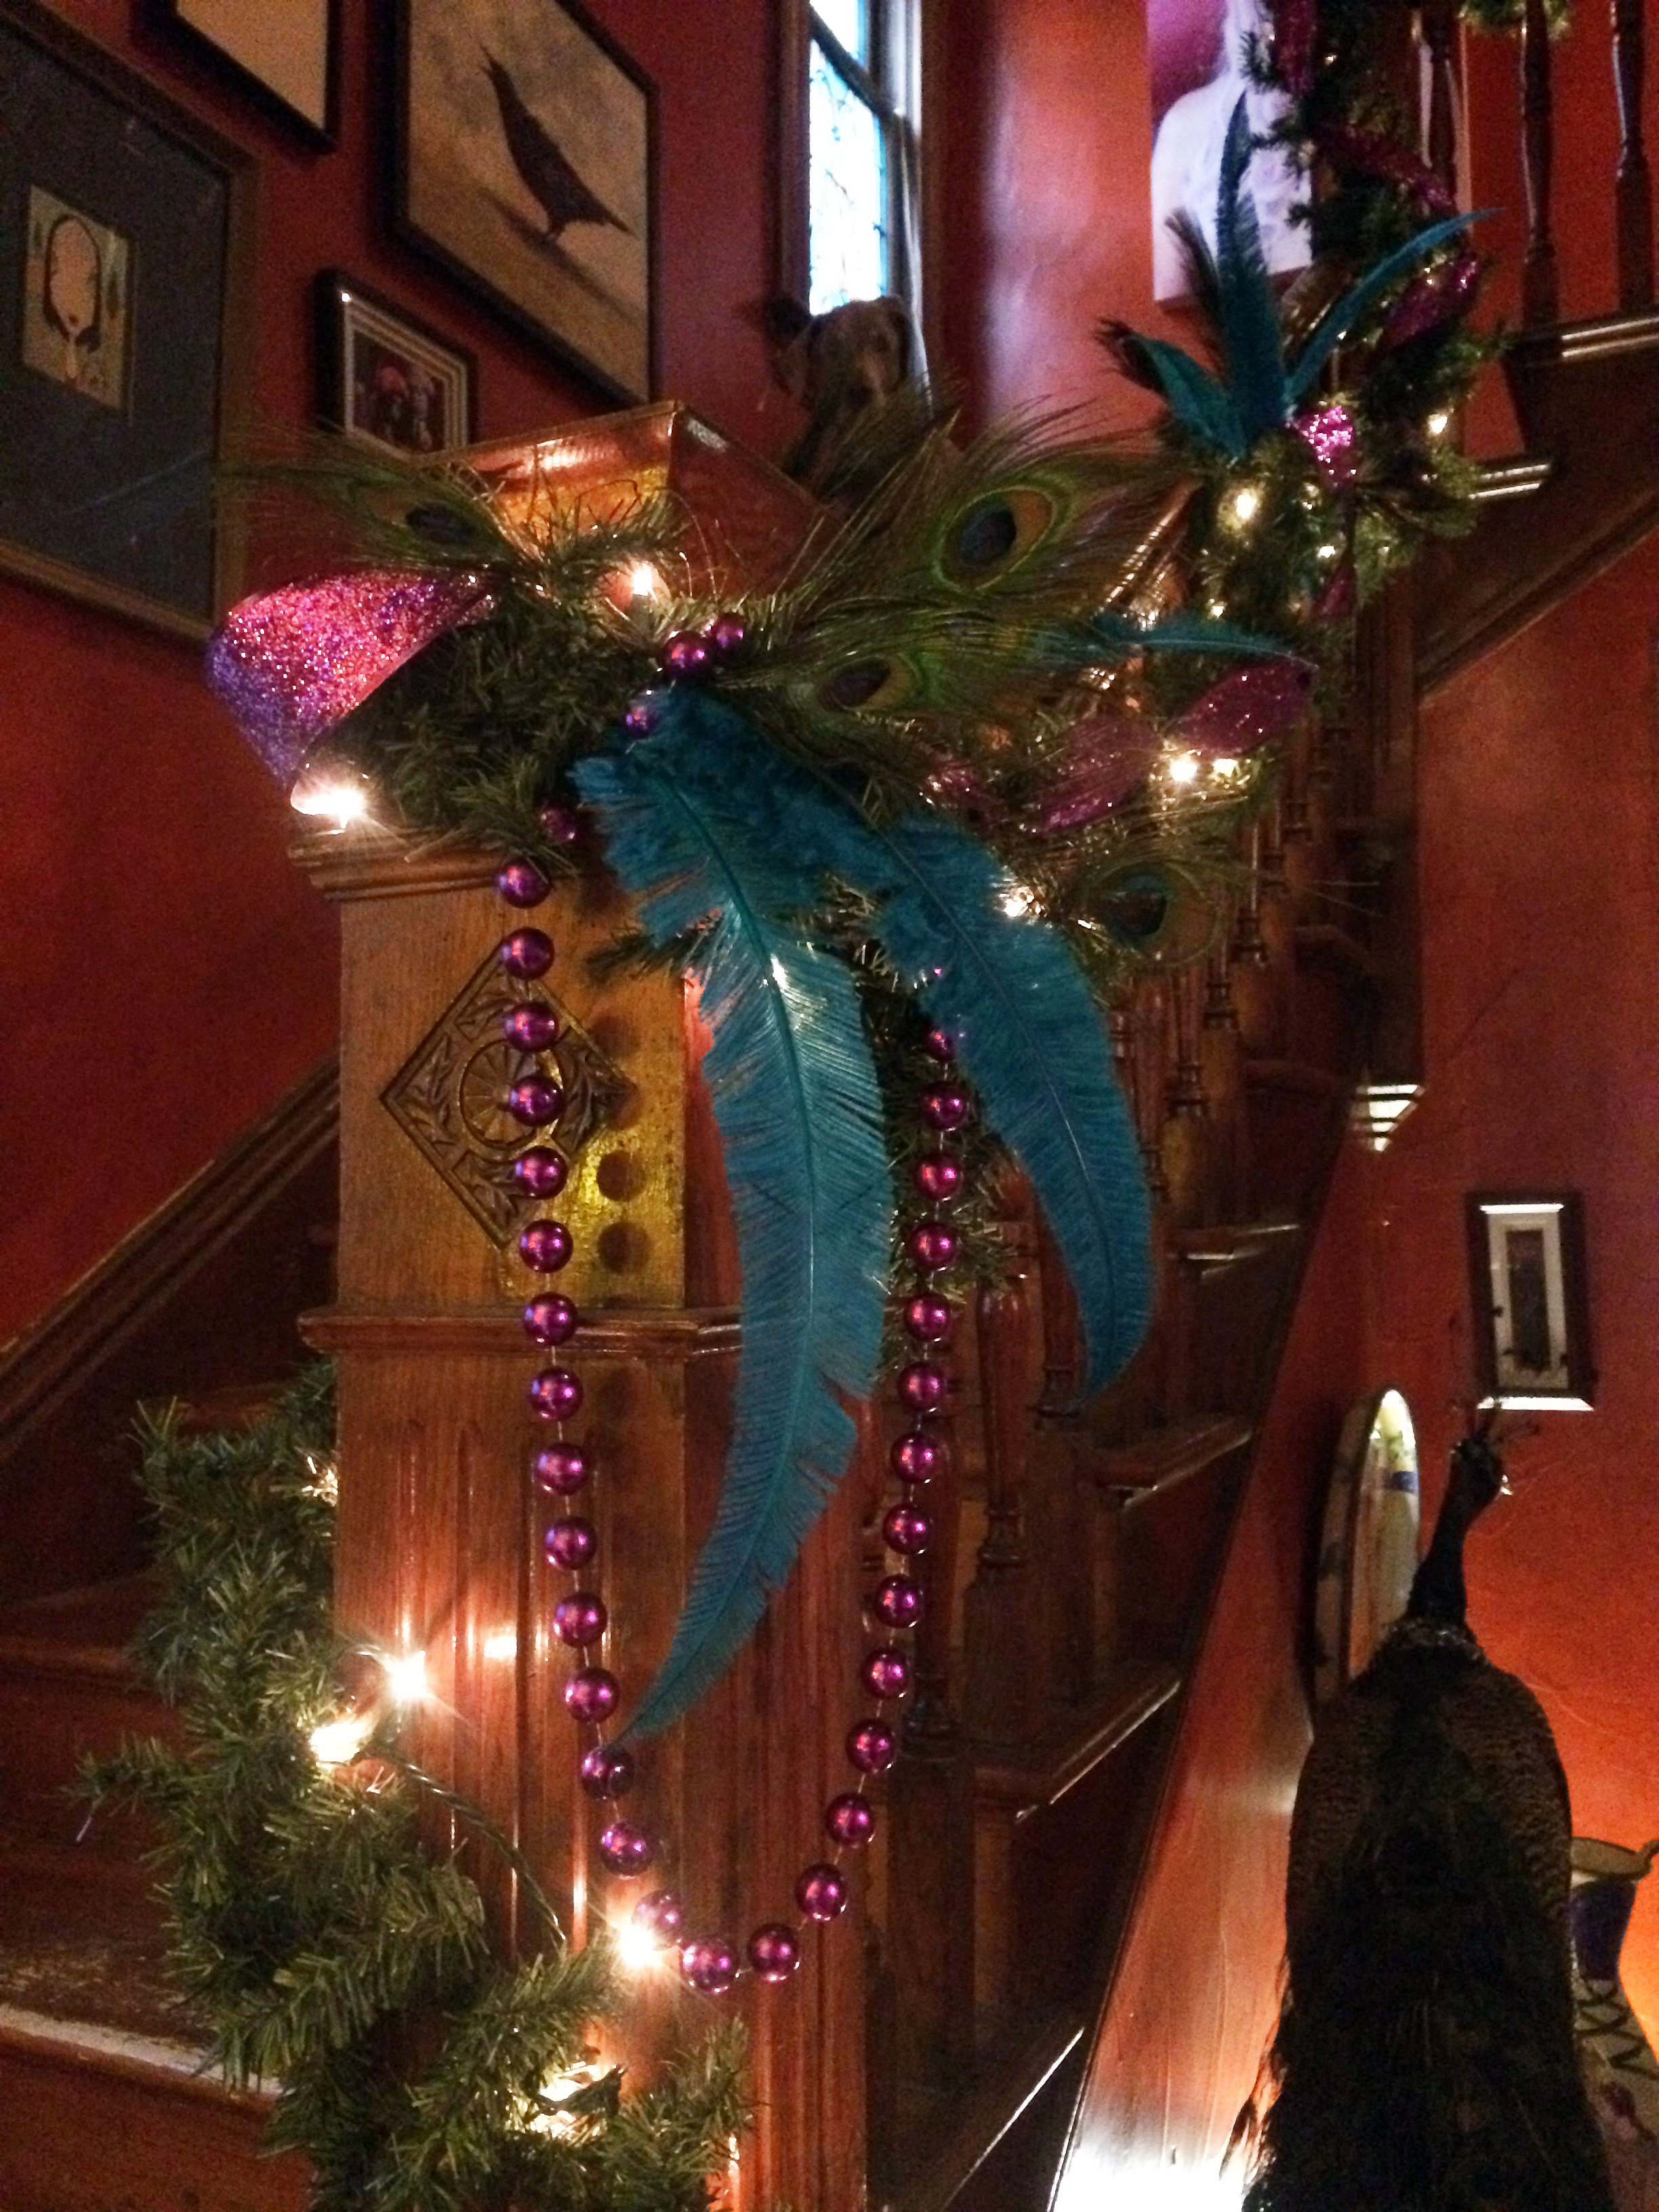 heres a close up of the newel post yes that is a taxidermy peacock herman to the right one of my most prized possessions he lives there year round - Where To Buy Christmas Lights Year Round